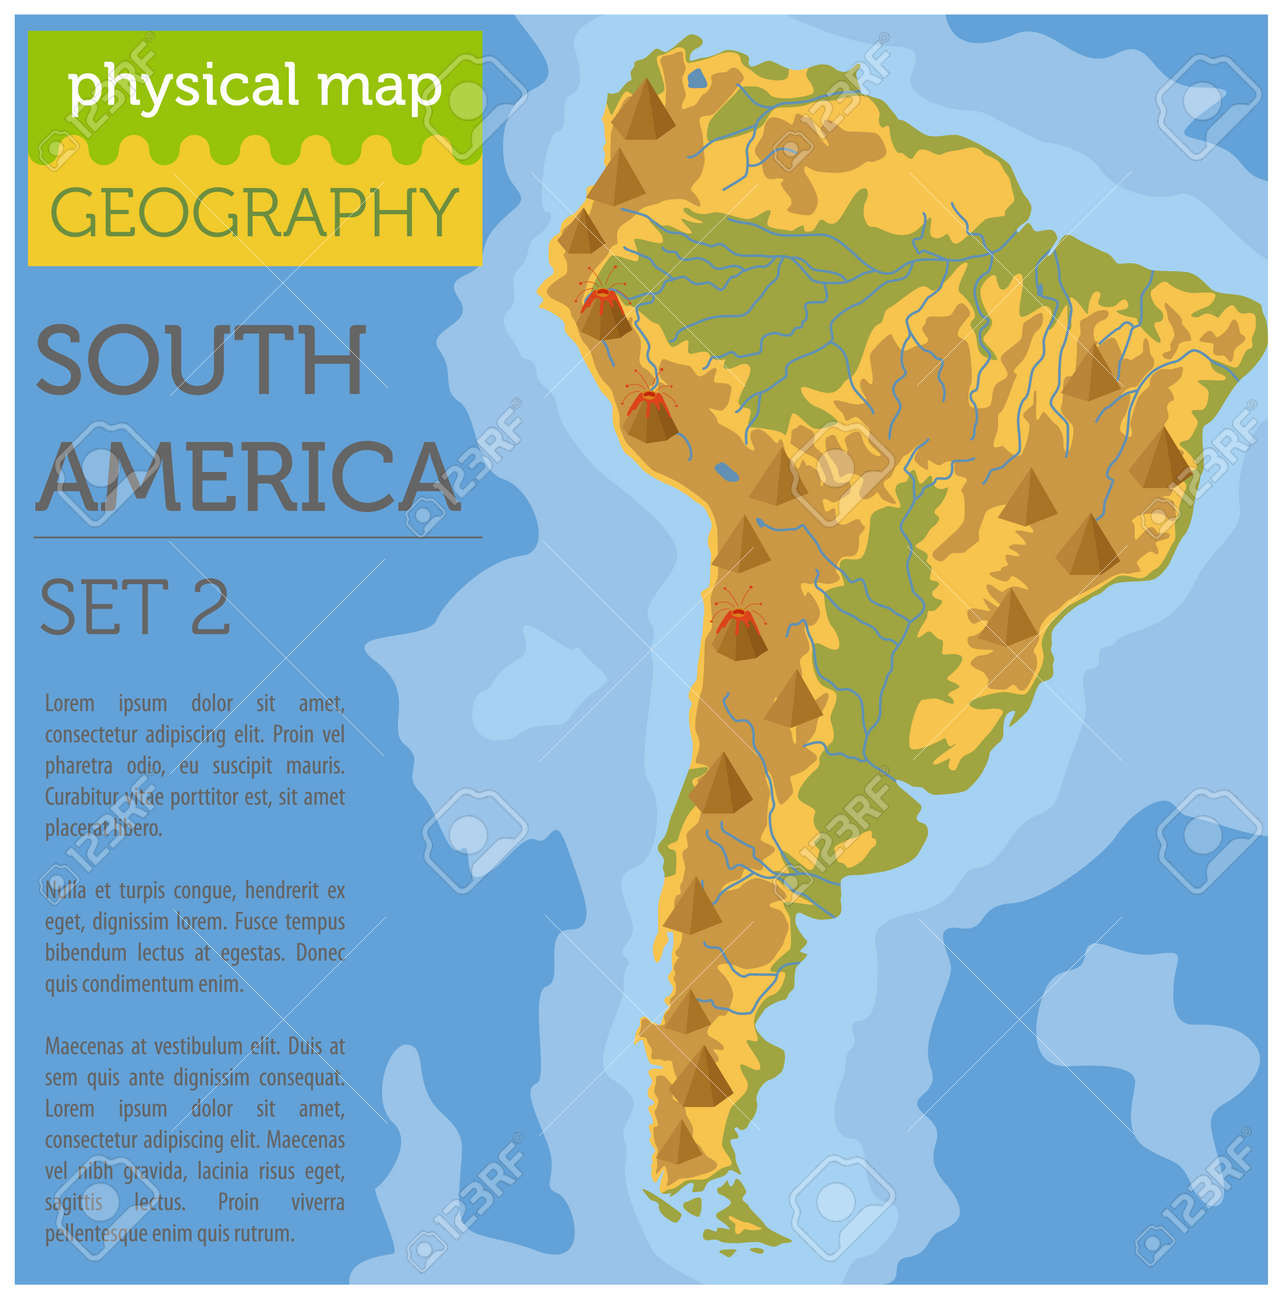 South America physical map elements. Build your own geography.. on map making, map breakdown, typographic elements, map of baltimore and surrounding cities, map icons, map numbers, map symbols, map essentials, map people, map skills, map of maryland, body elements, map data, map scale, map tools, programming elements, user interface elements, miscellaneous elements, cartographic design, task elements, map key, map vintage, software elements, reference elements, map of speech, map pieces, map of arizona high schools, map of montana indian reservations, topic elements,